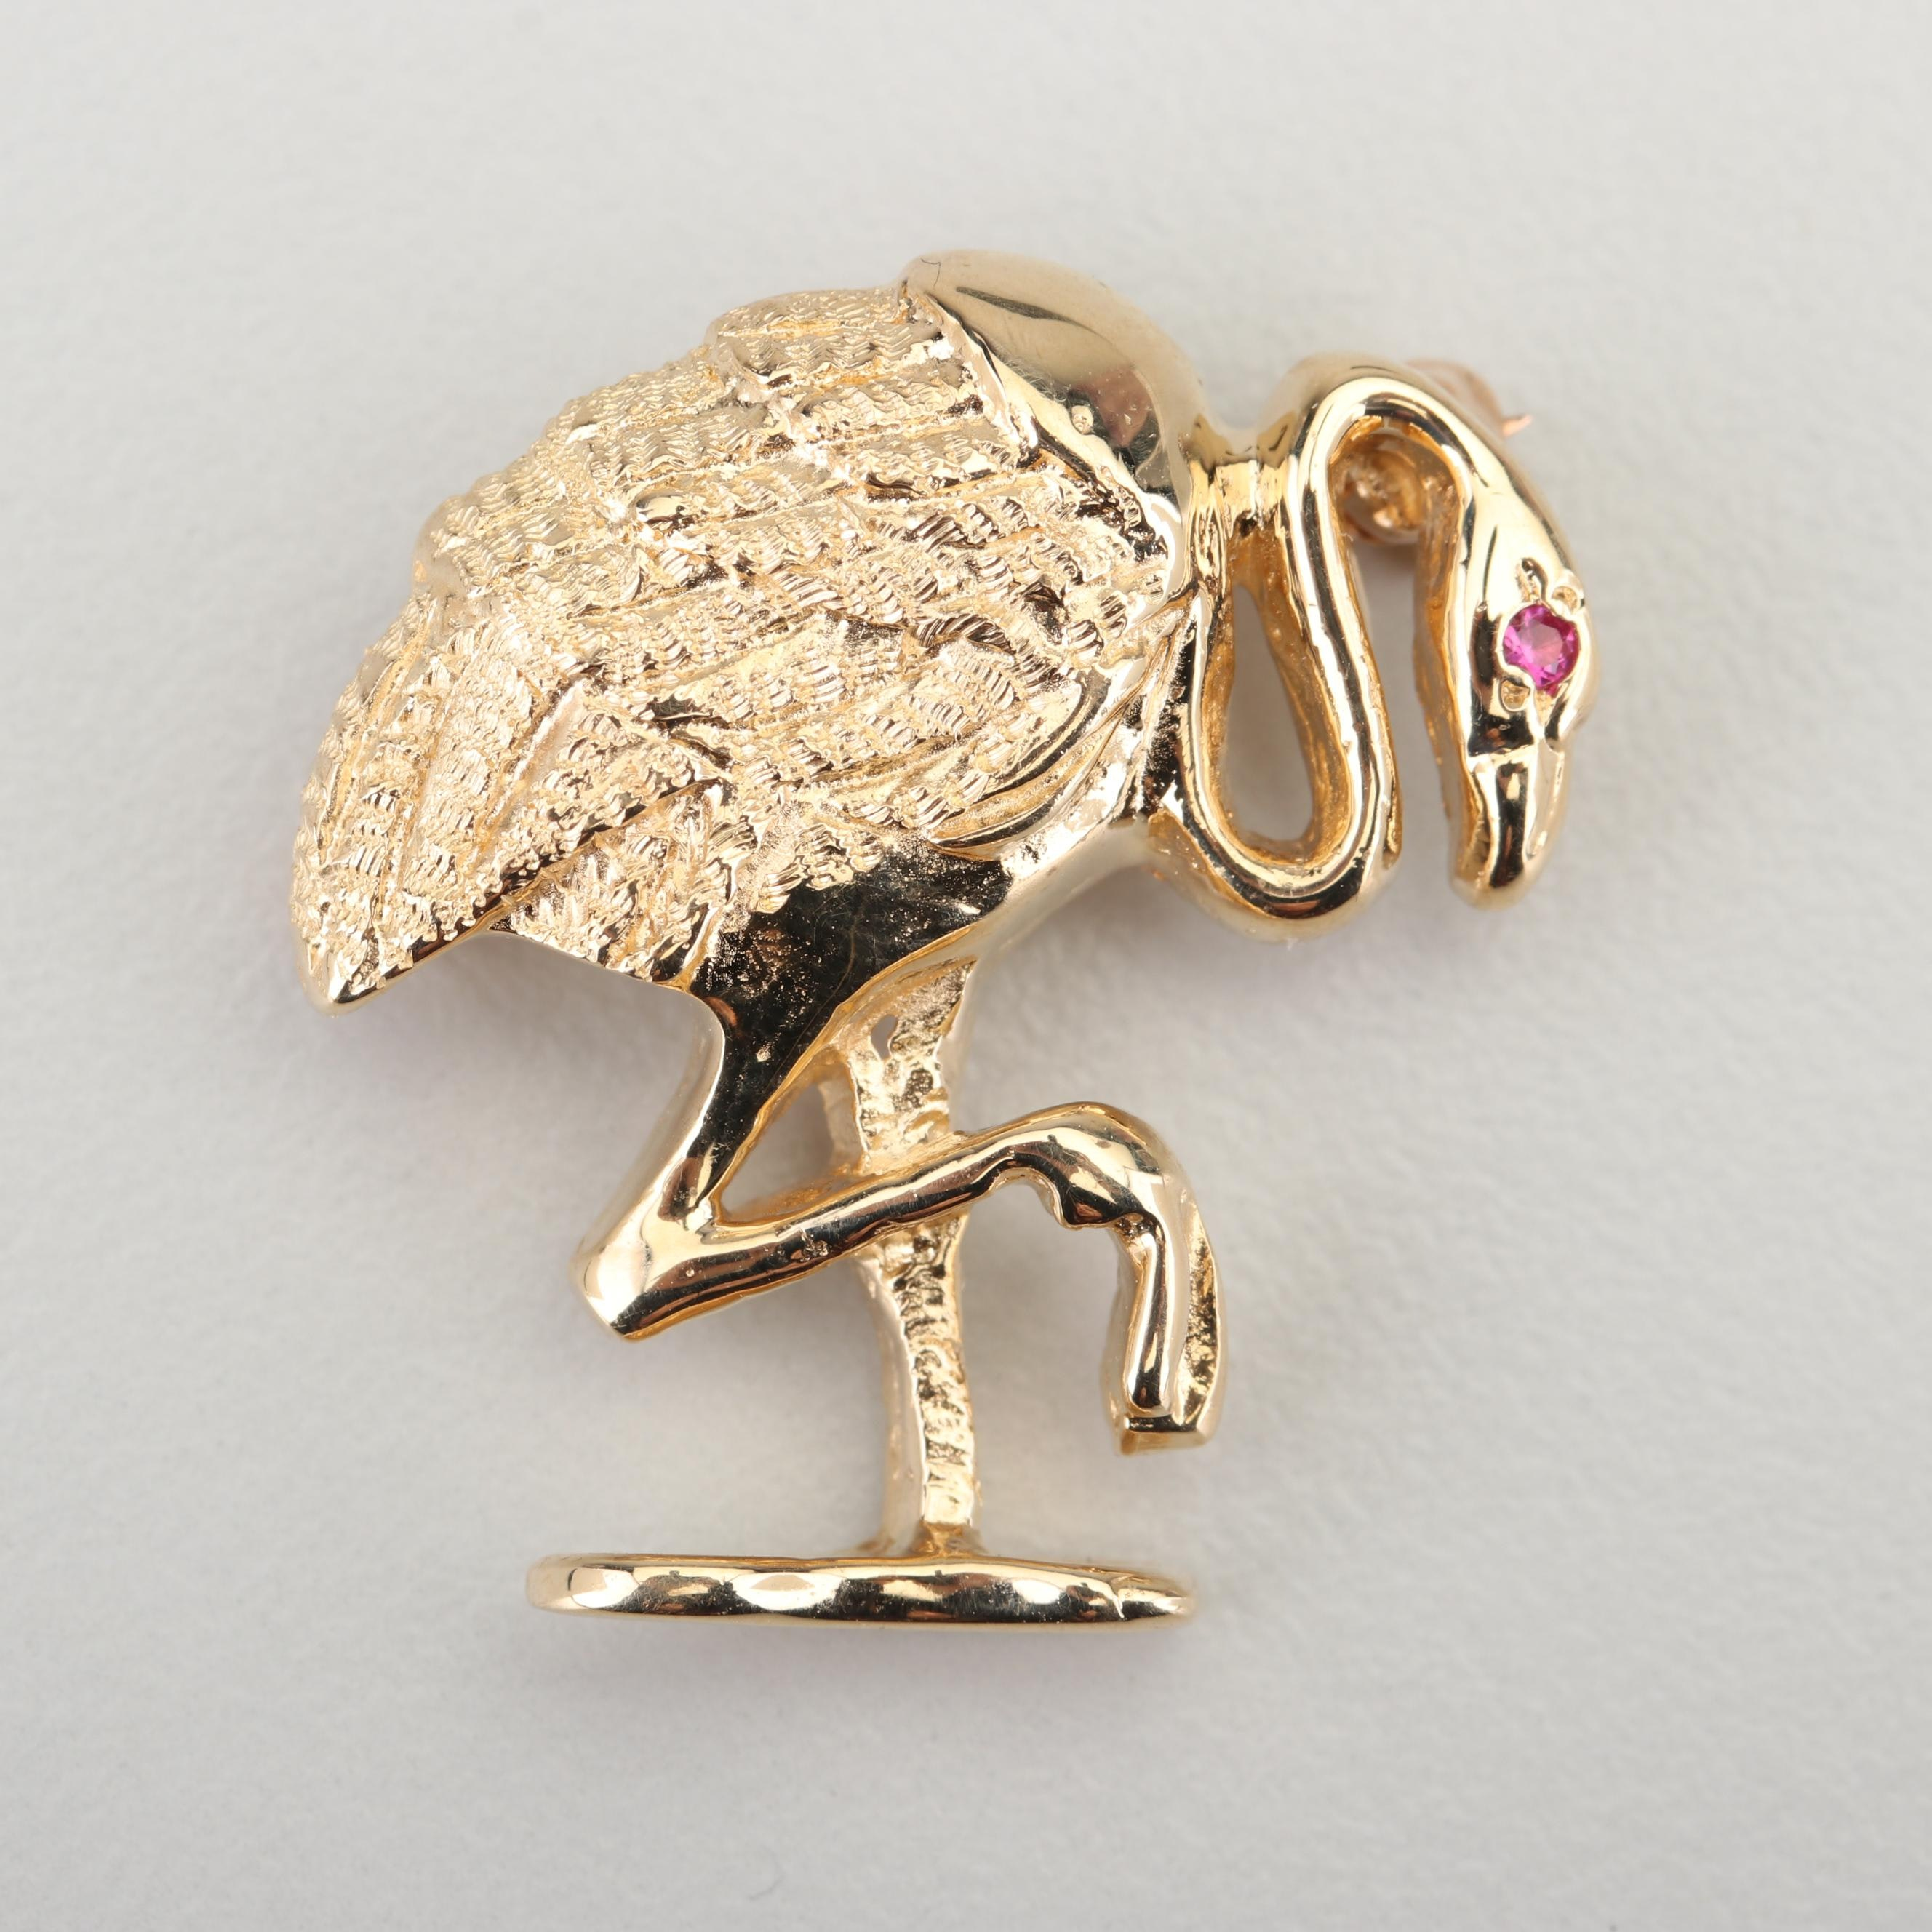 14K Yellow Gold Flamingo Brooch with Ruby Accented Eye